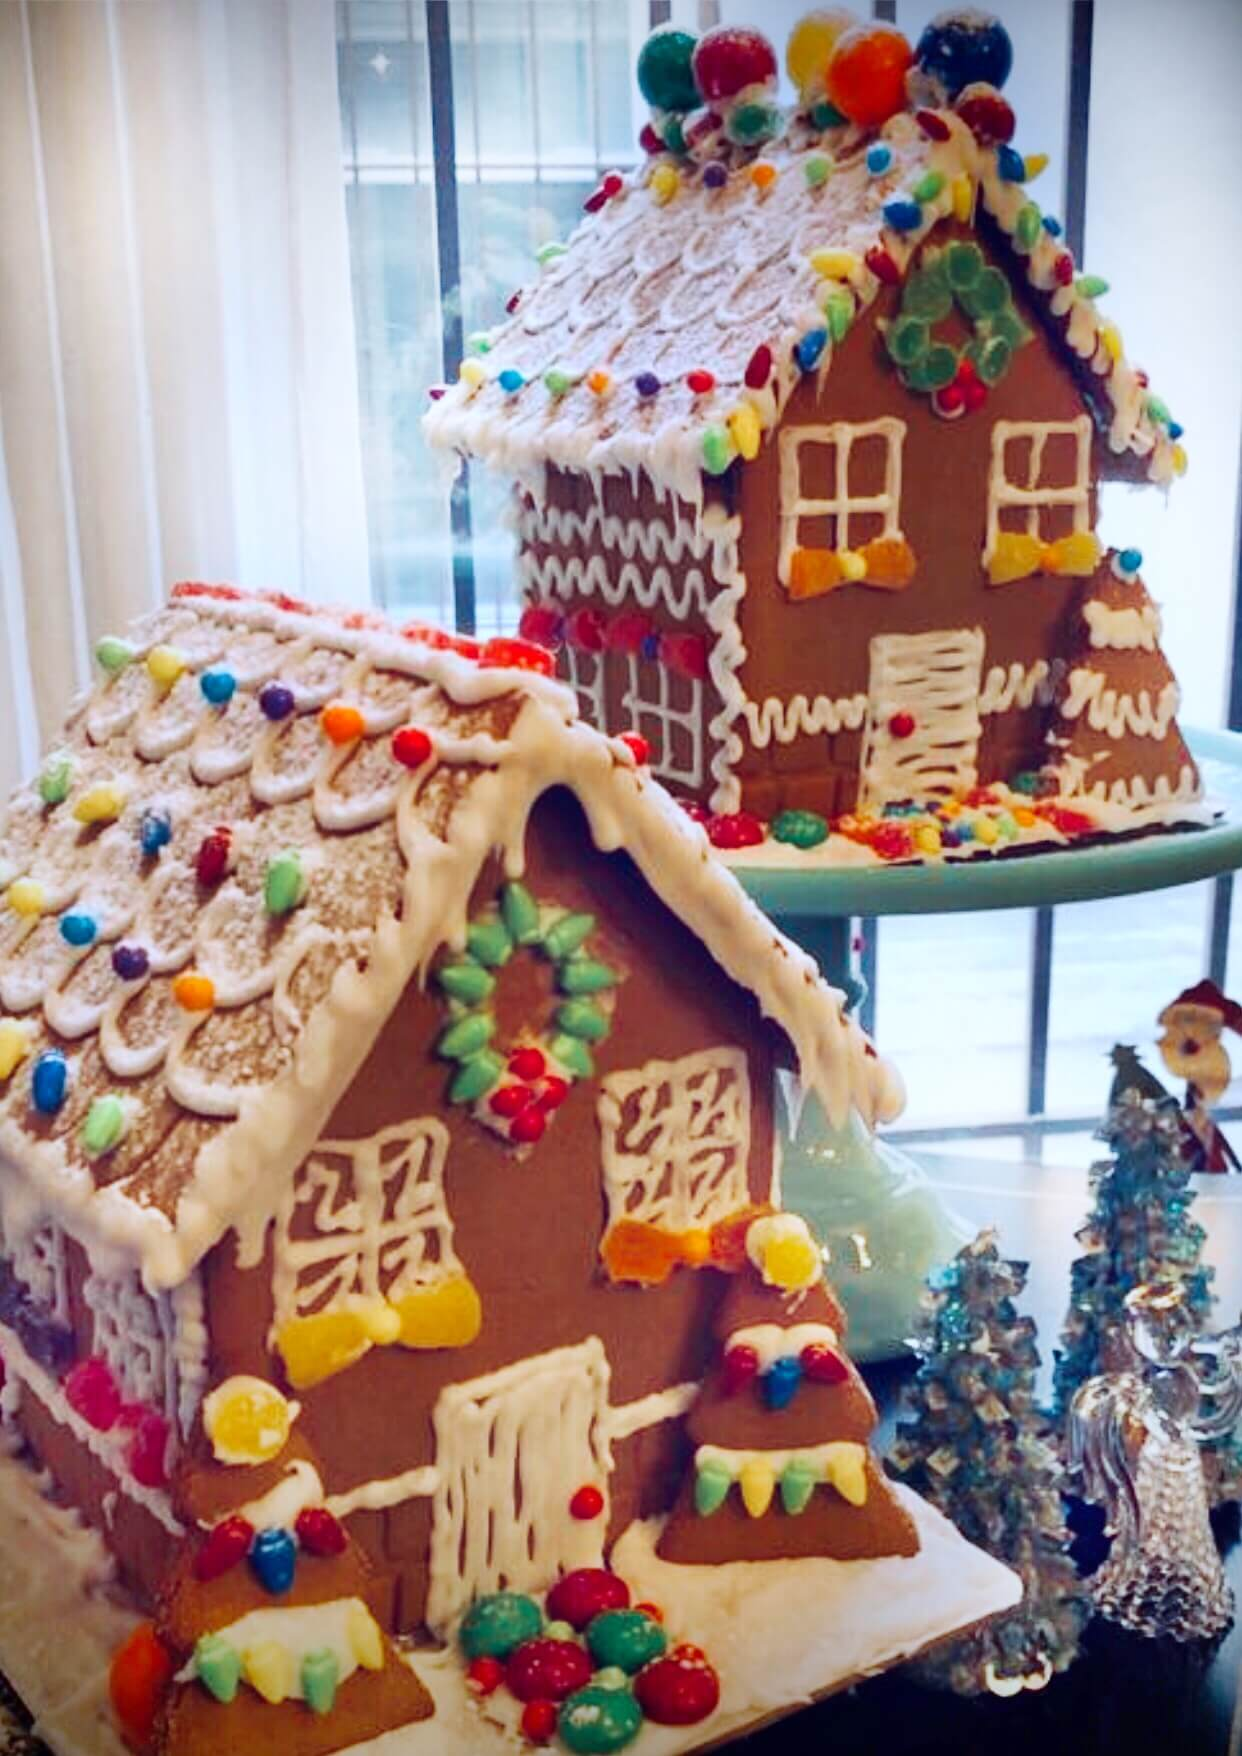 Pair of Gingerbread Houses on Cake Stands